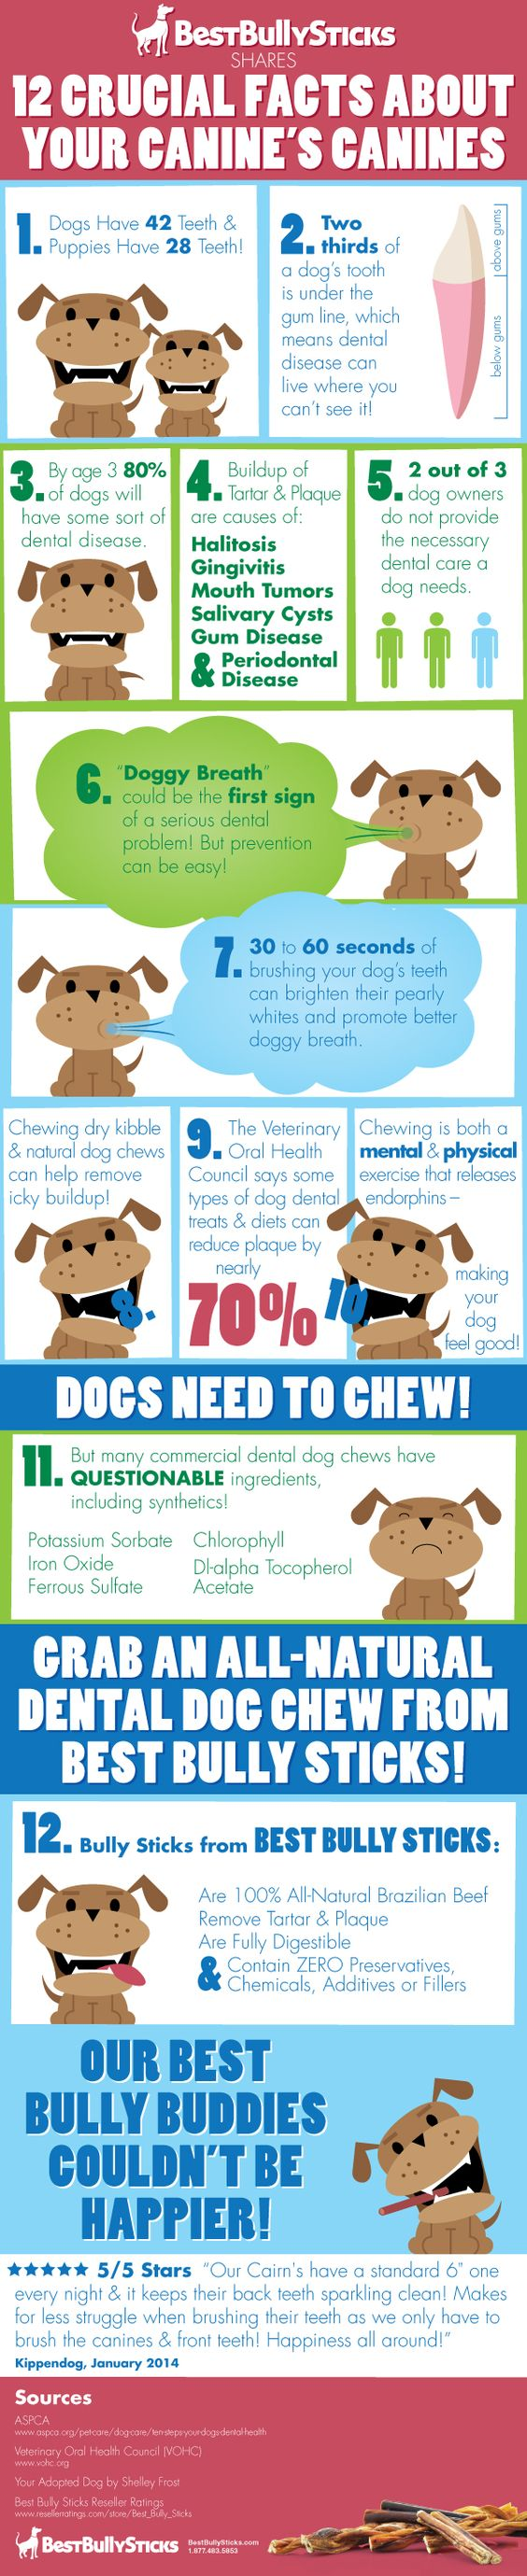 important facts about dog dental health chewchallenge bully sticks health and facts. Black Bedroom Furniture Sets. Home Design Ideas